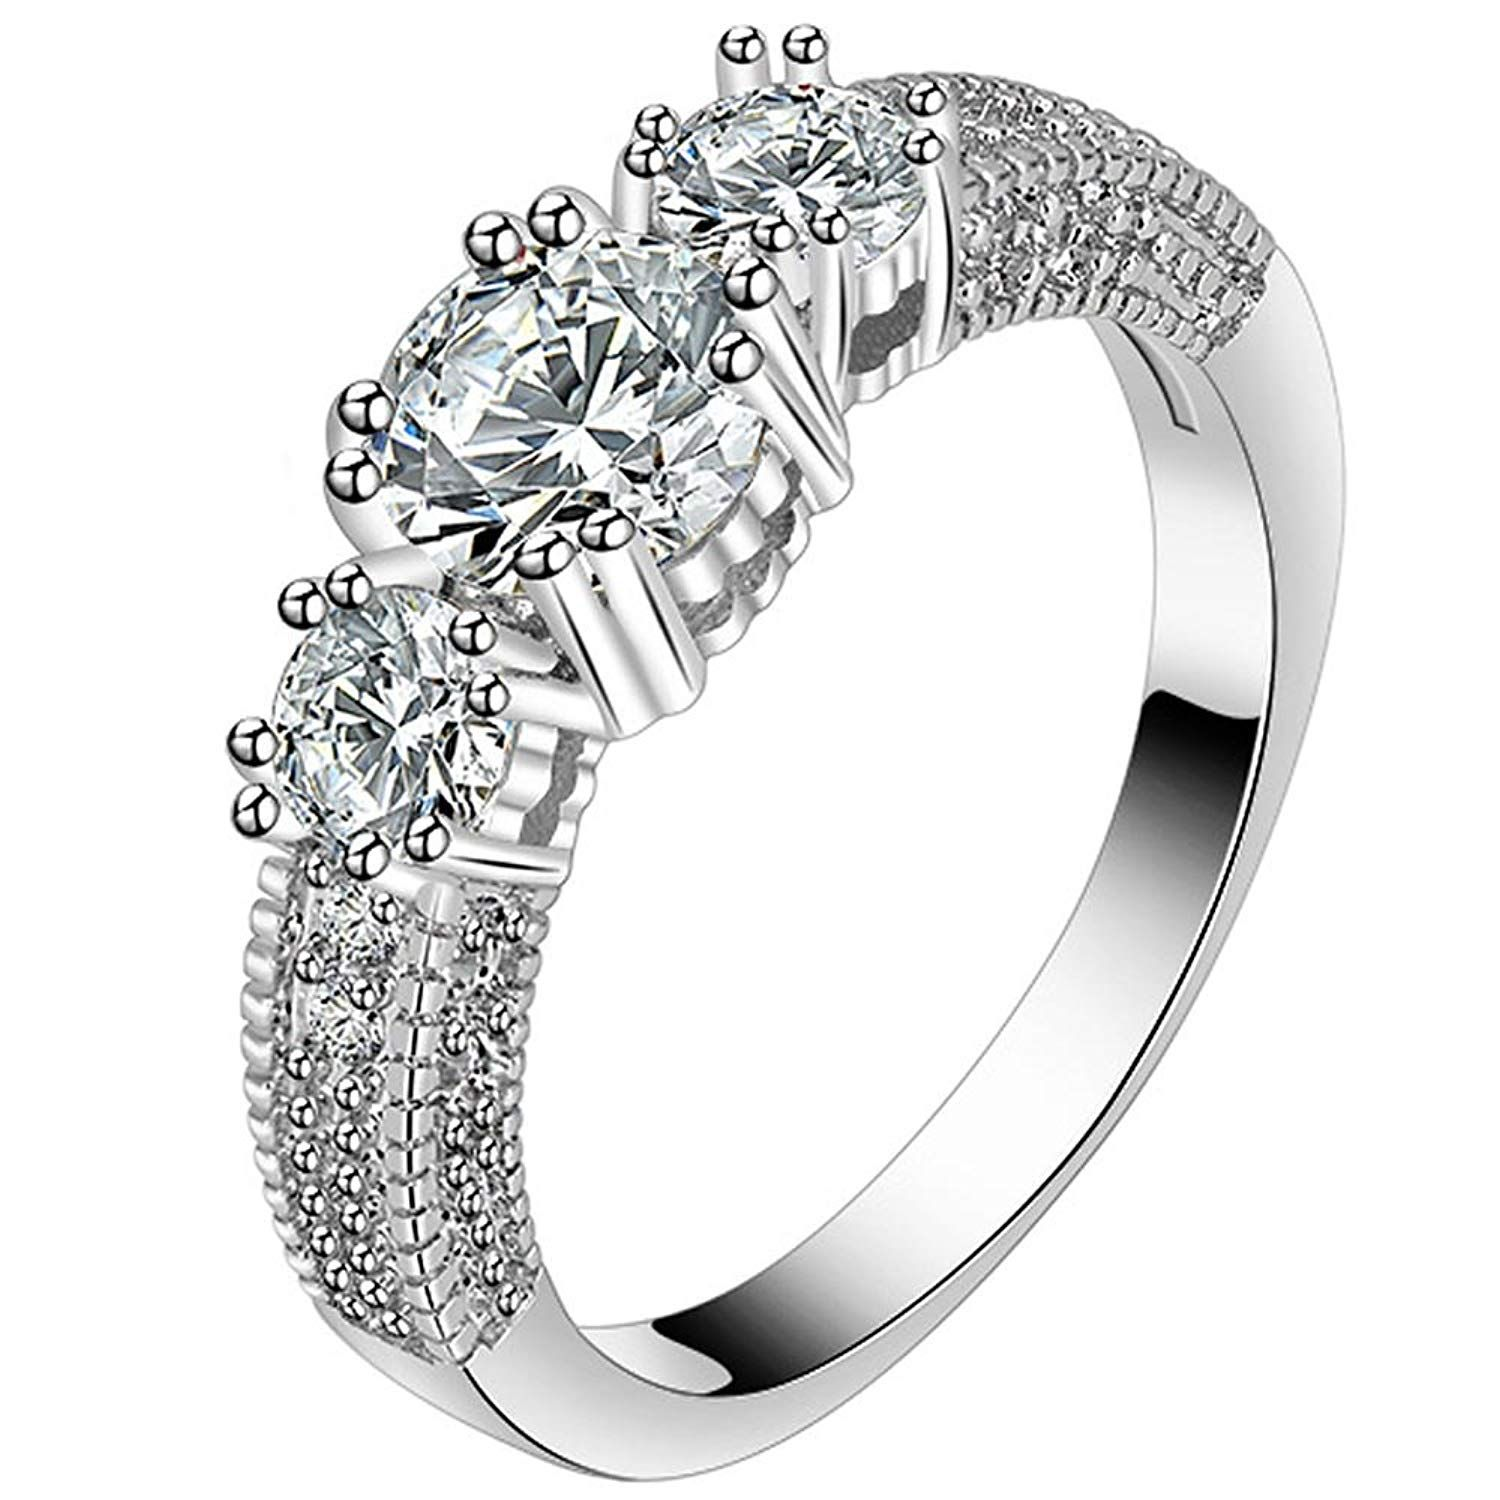 Lwjyx Women S Round Cubic Zirconia 3 Stone White Gold Ring Wedding Band For Bridal Size 6 9 Thanks A L Gold Band Wedding Ring White Gold Rings Wedding Bands